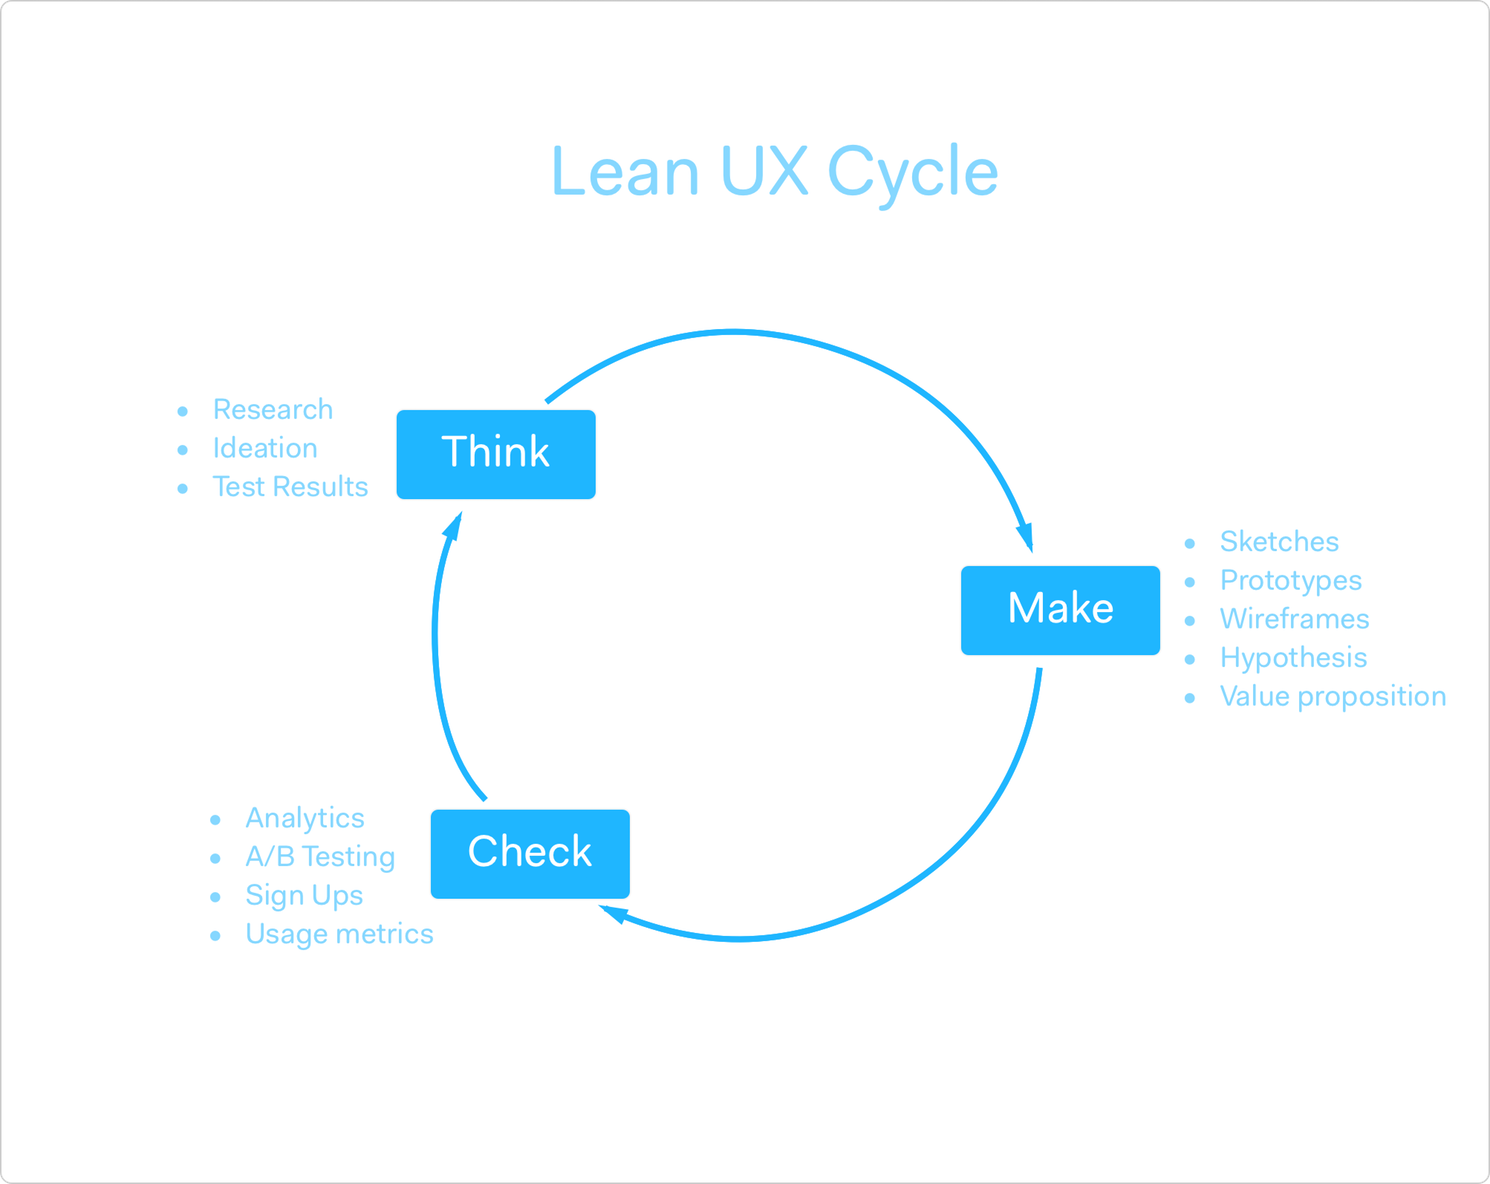 Lean UX cycle of thinking, making and checking